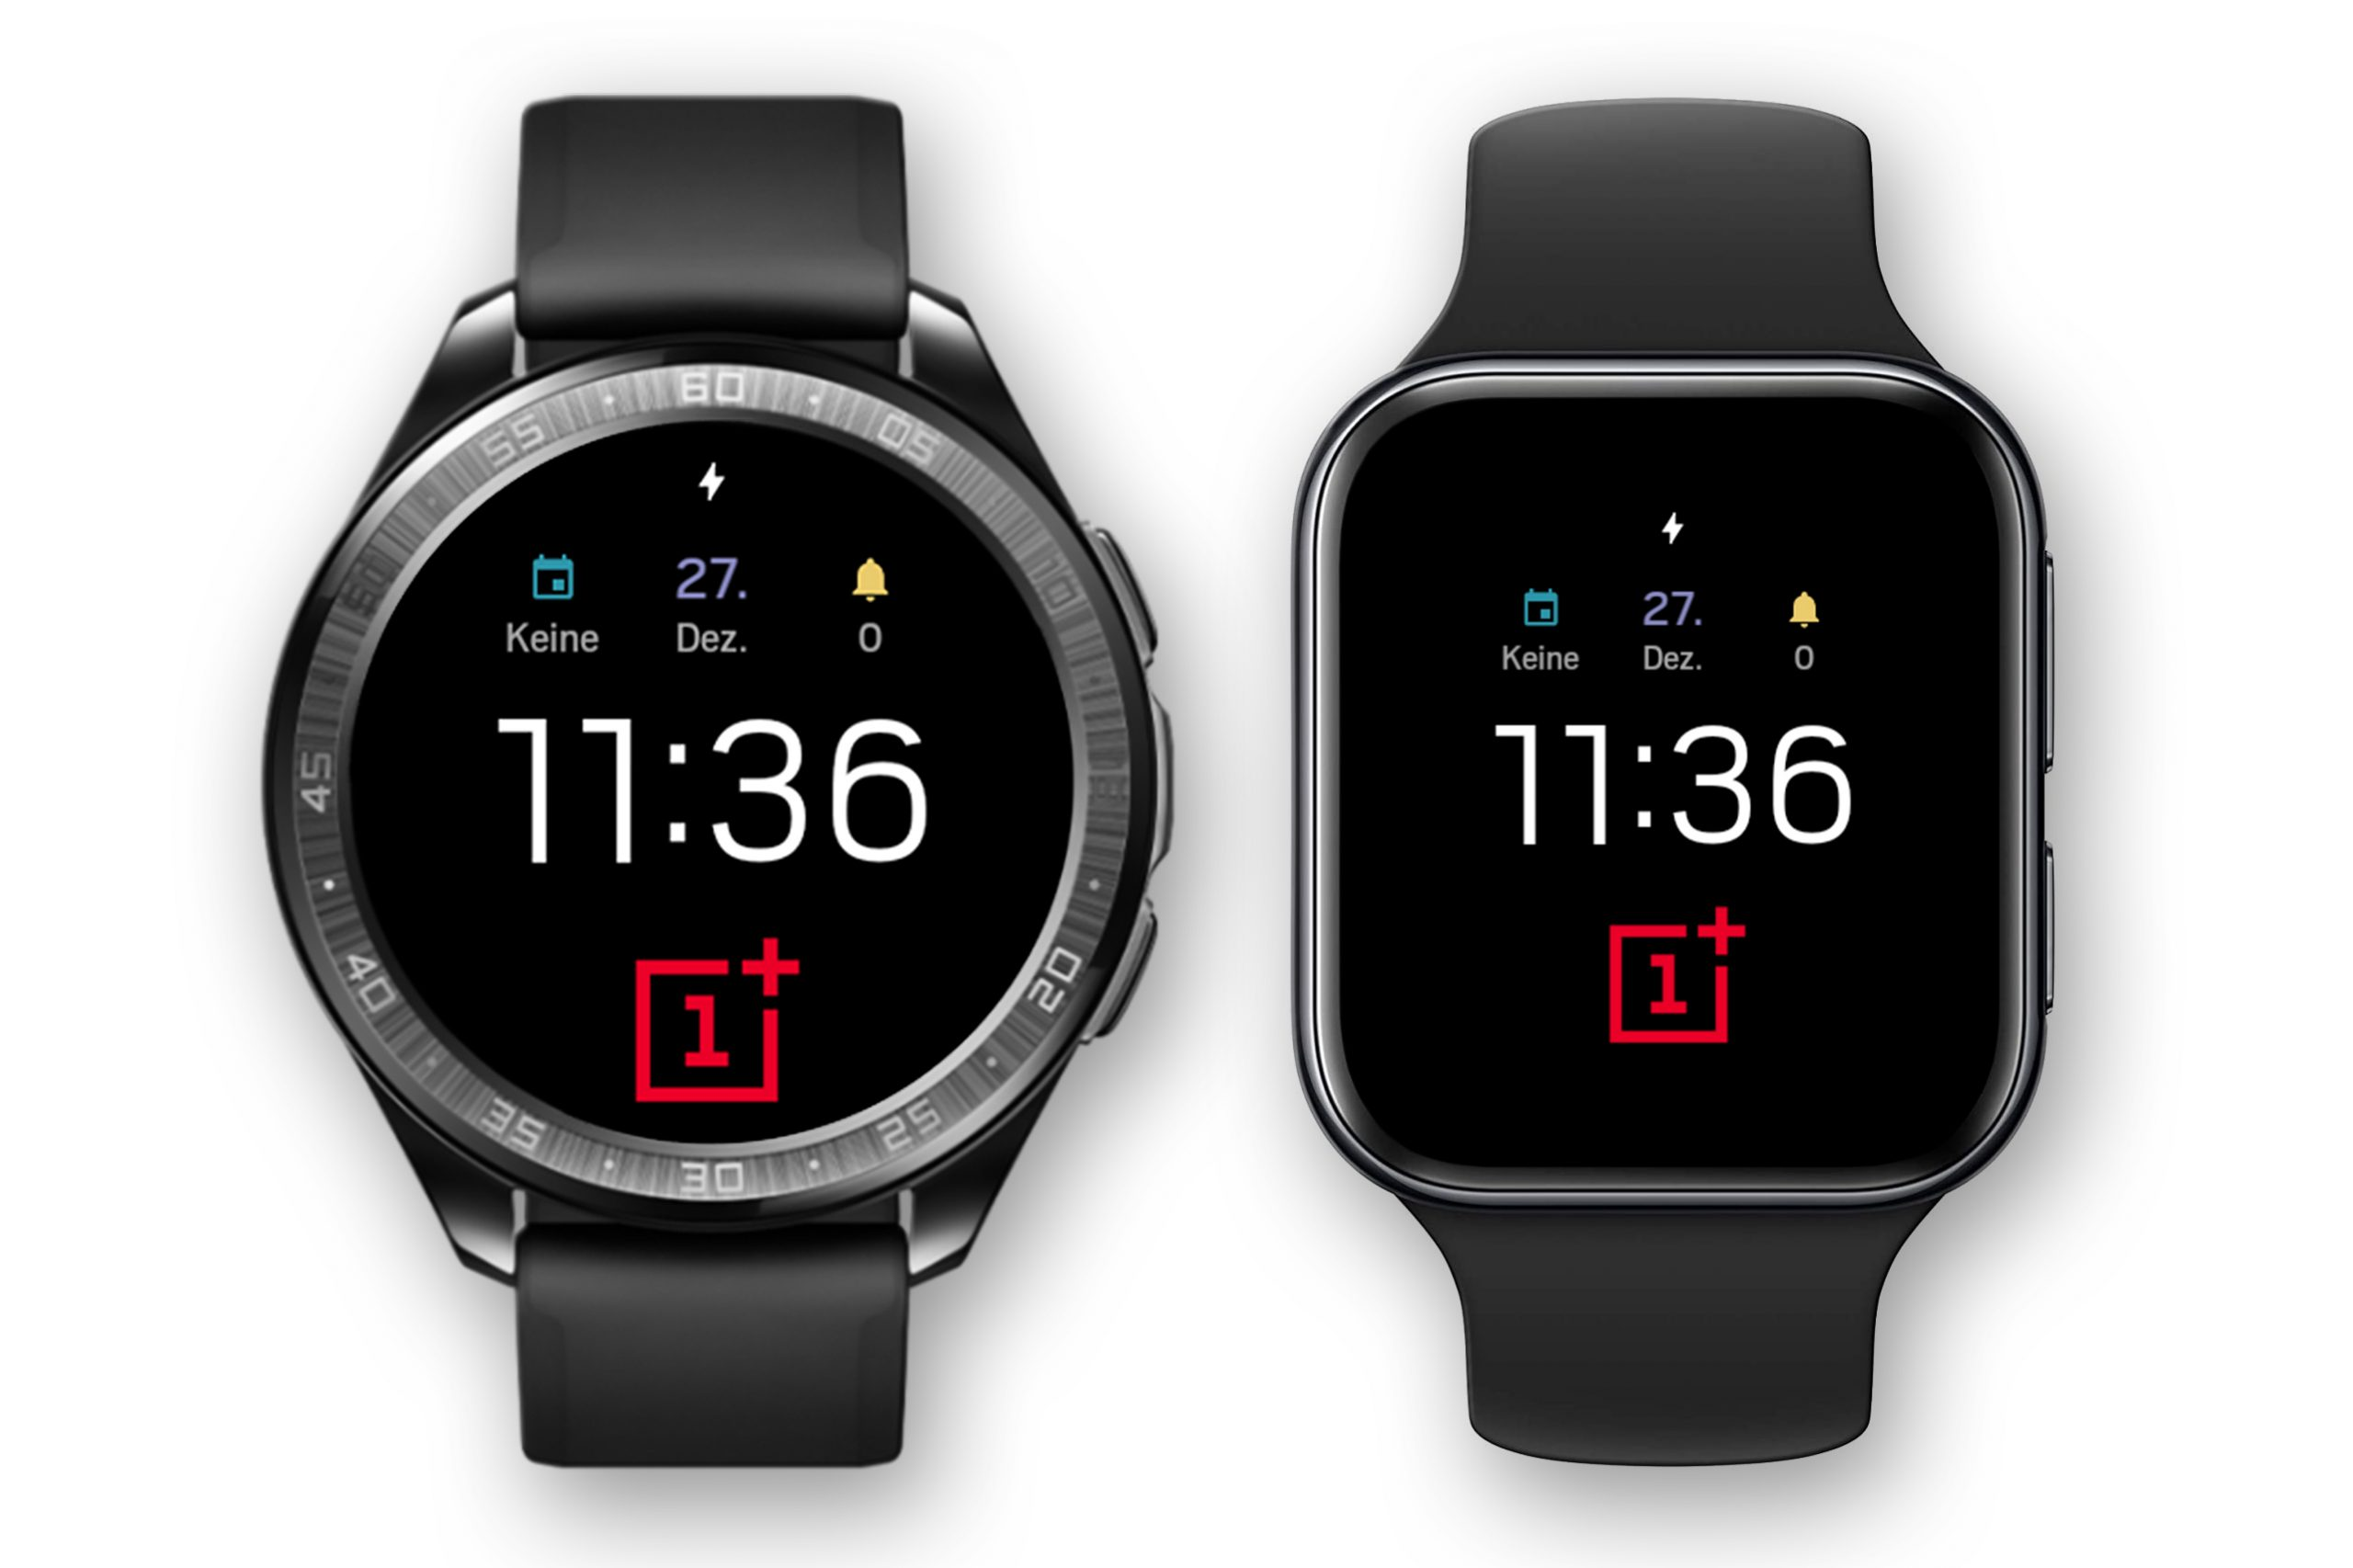 Ce sistem de operare va include smartwatch-ul OnePlus Watch